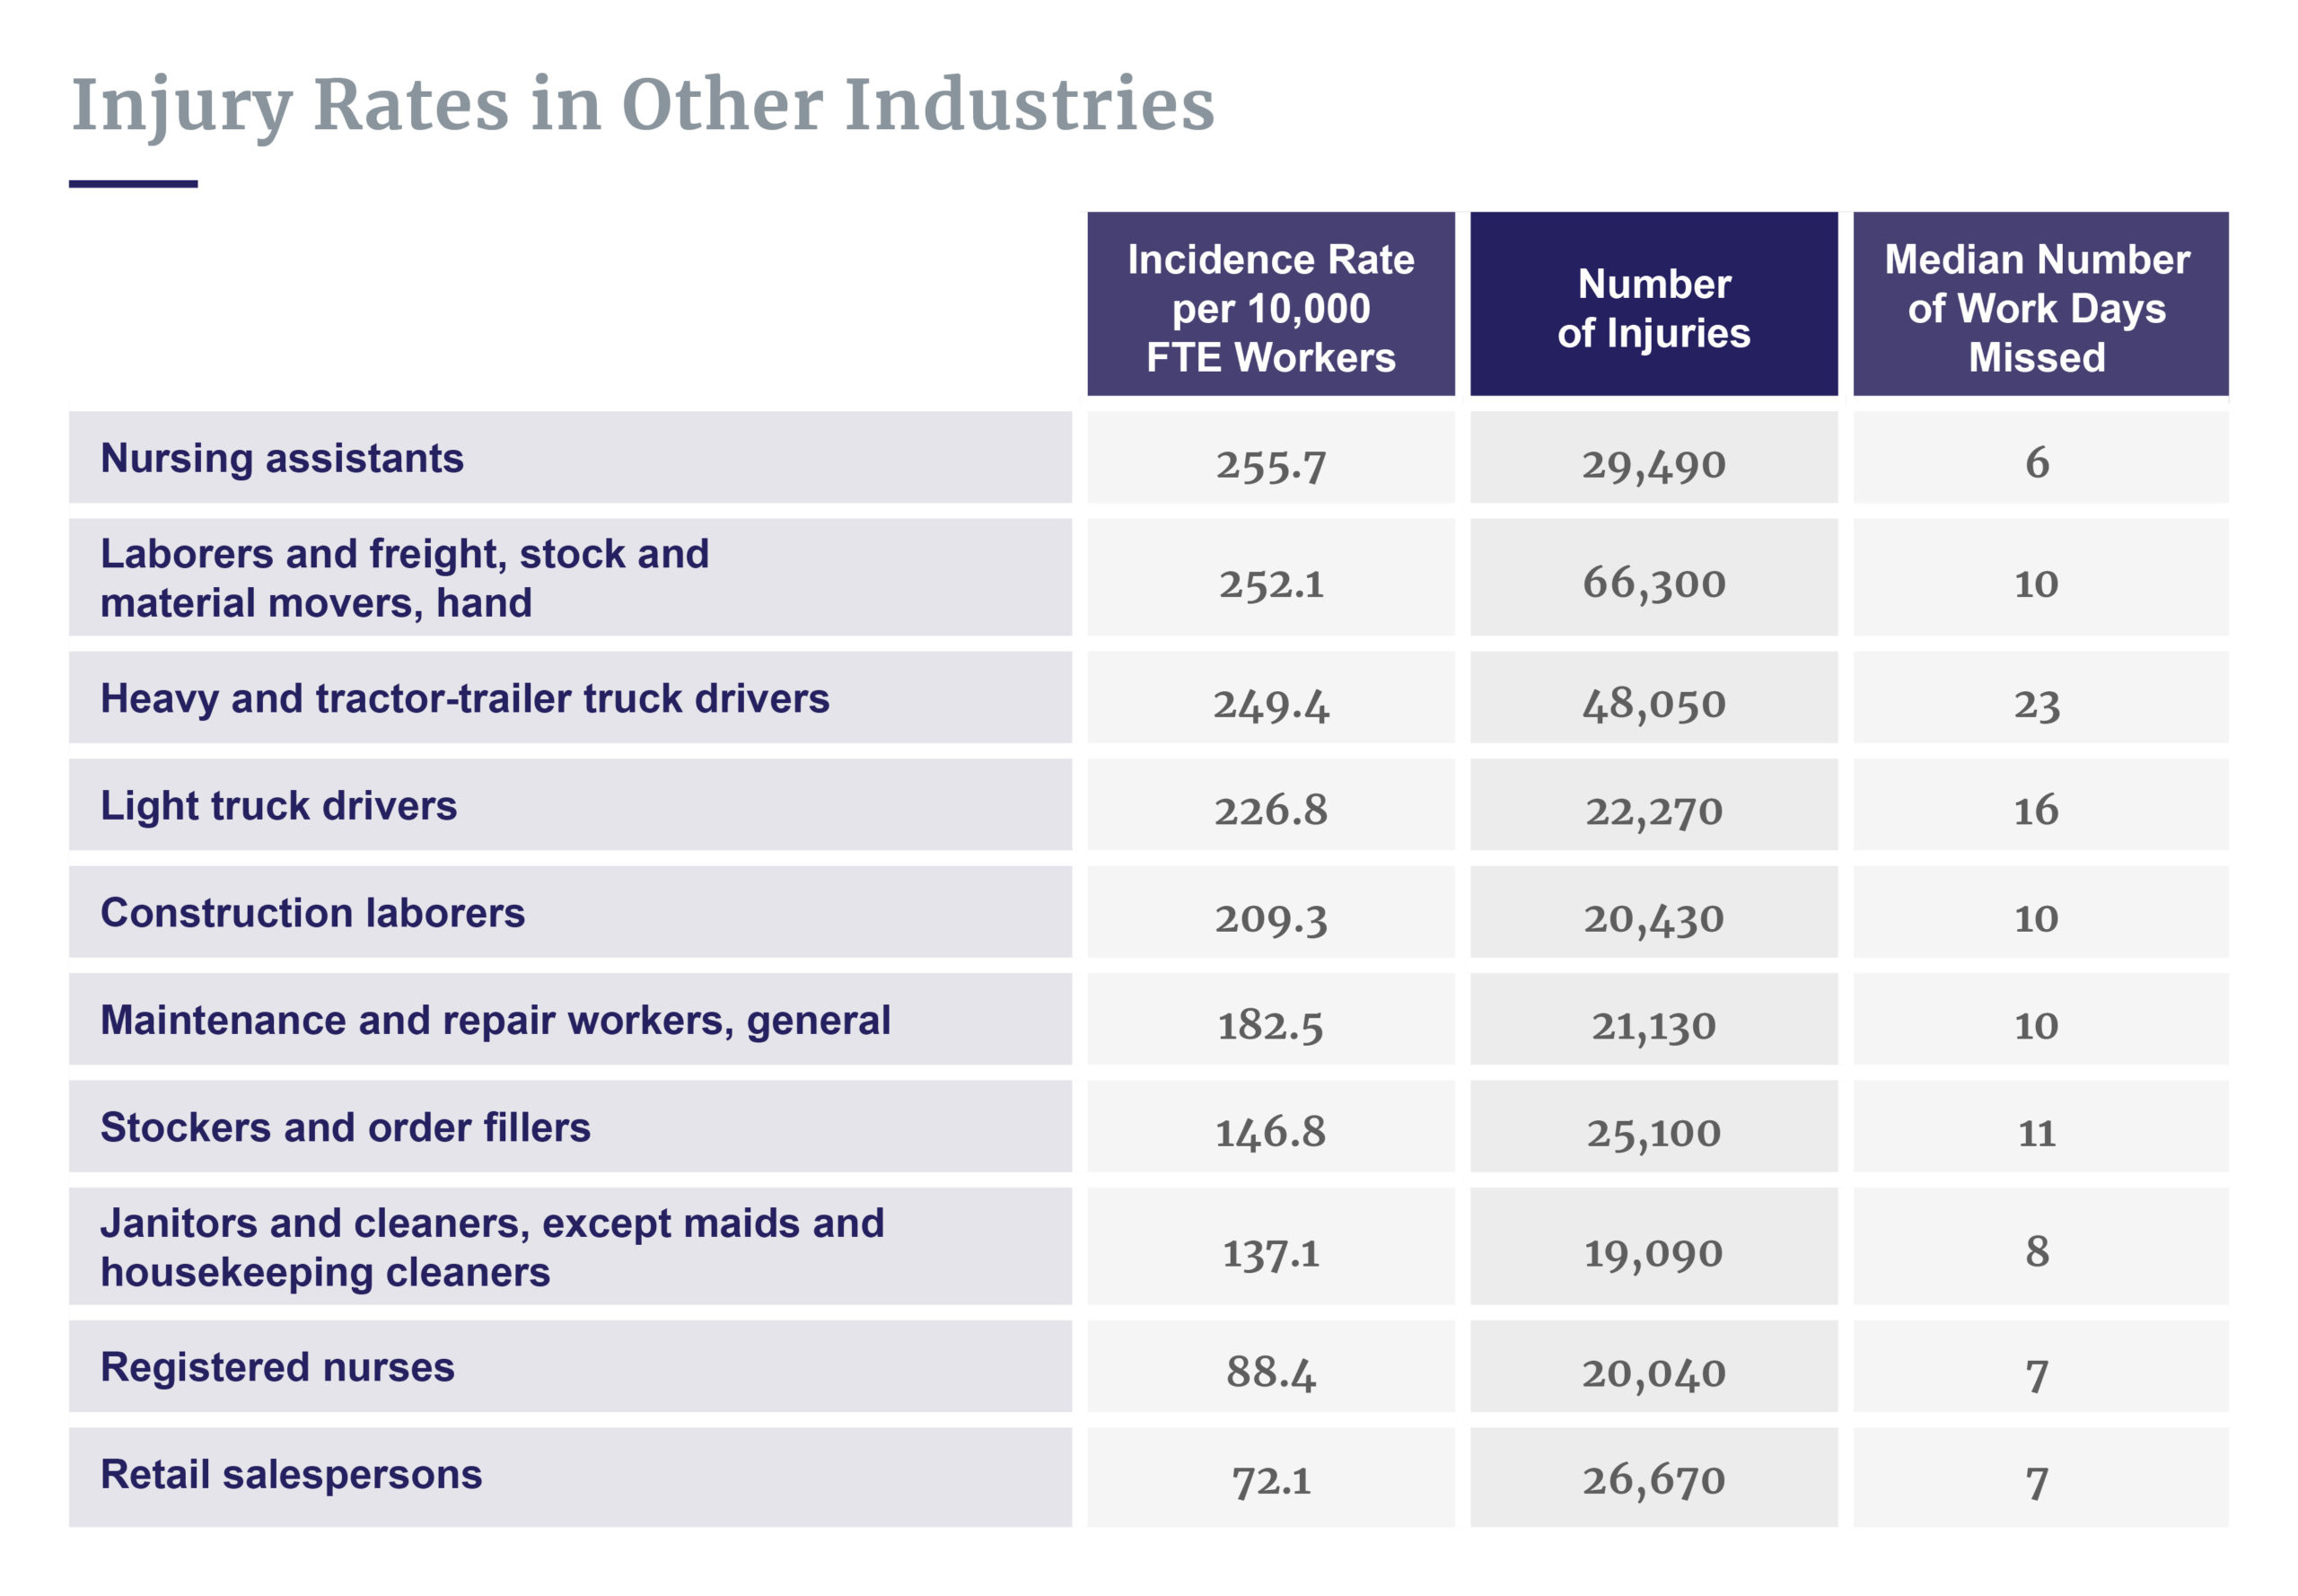 Injury rates by industry